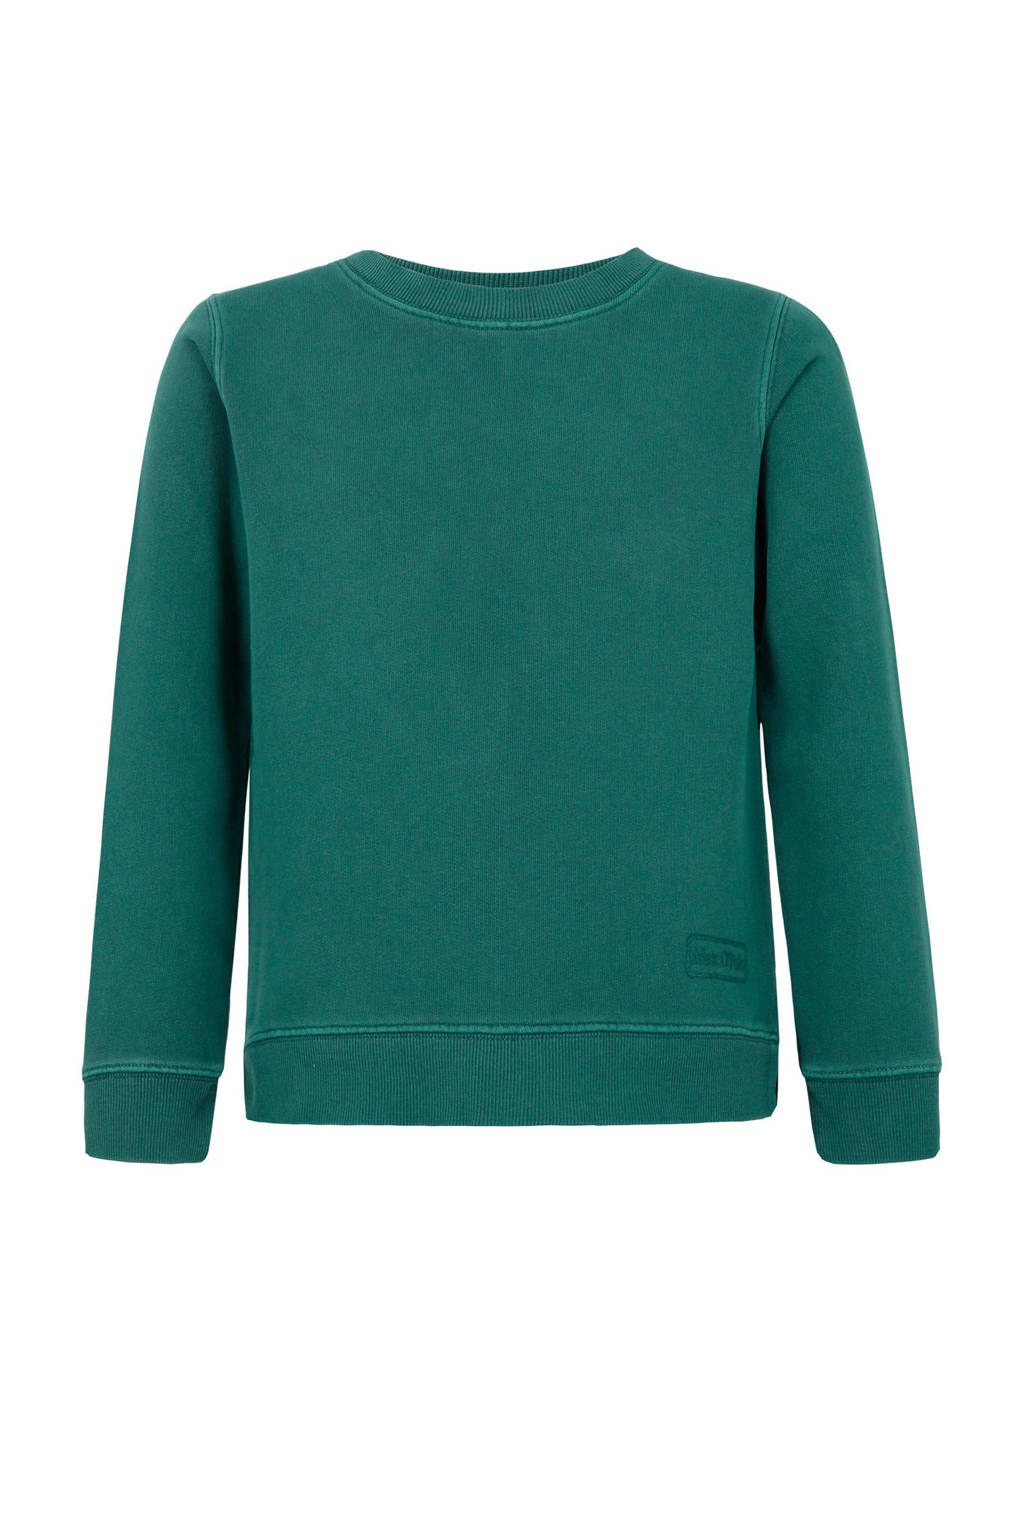 Marc O'Polo sweater met logo groen, Groen